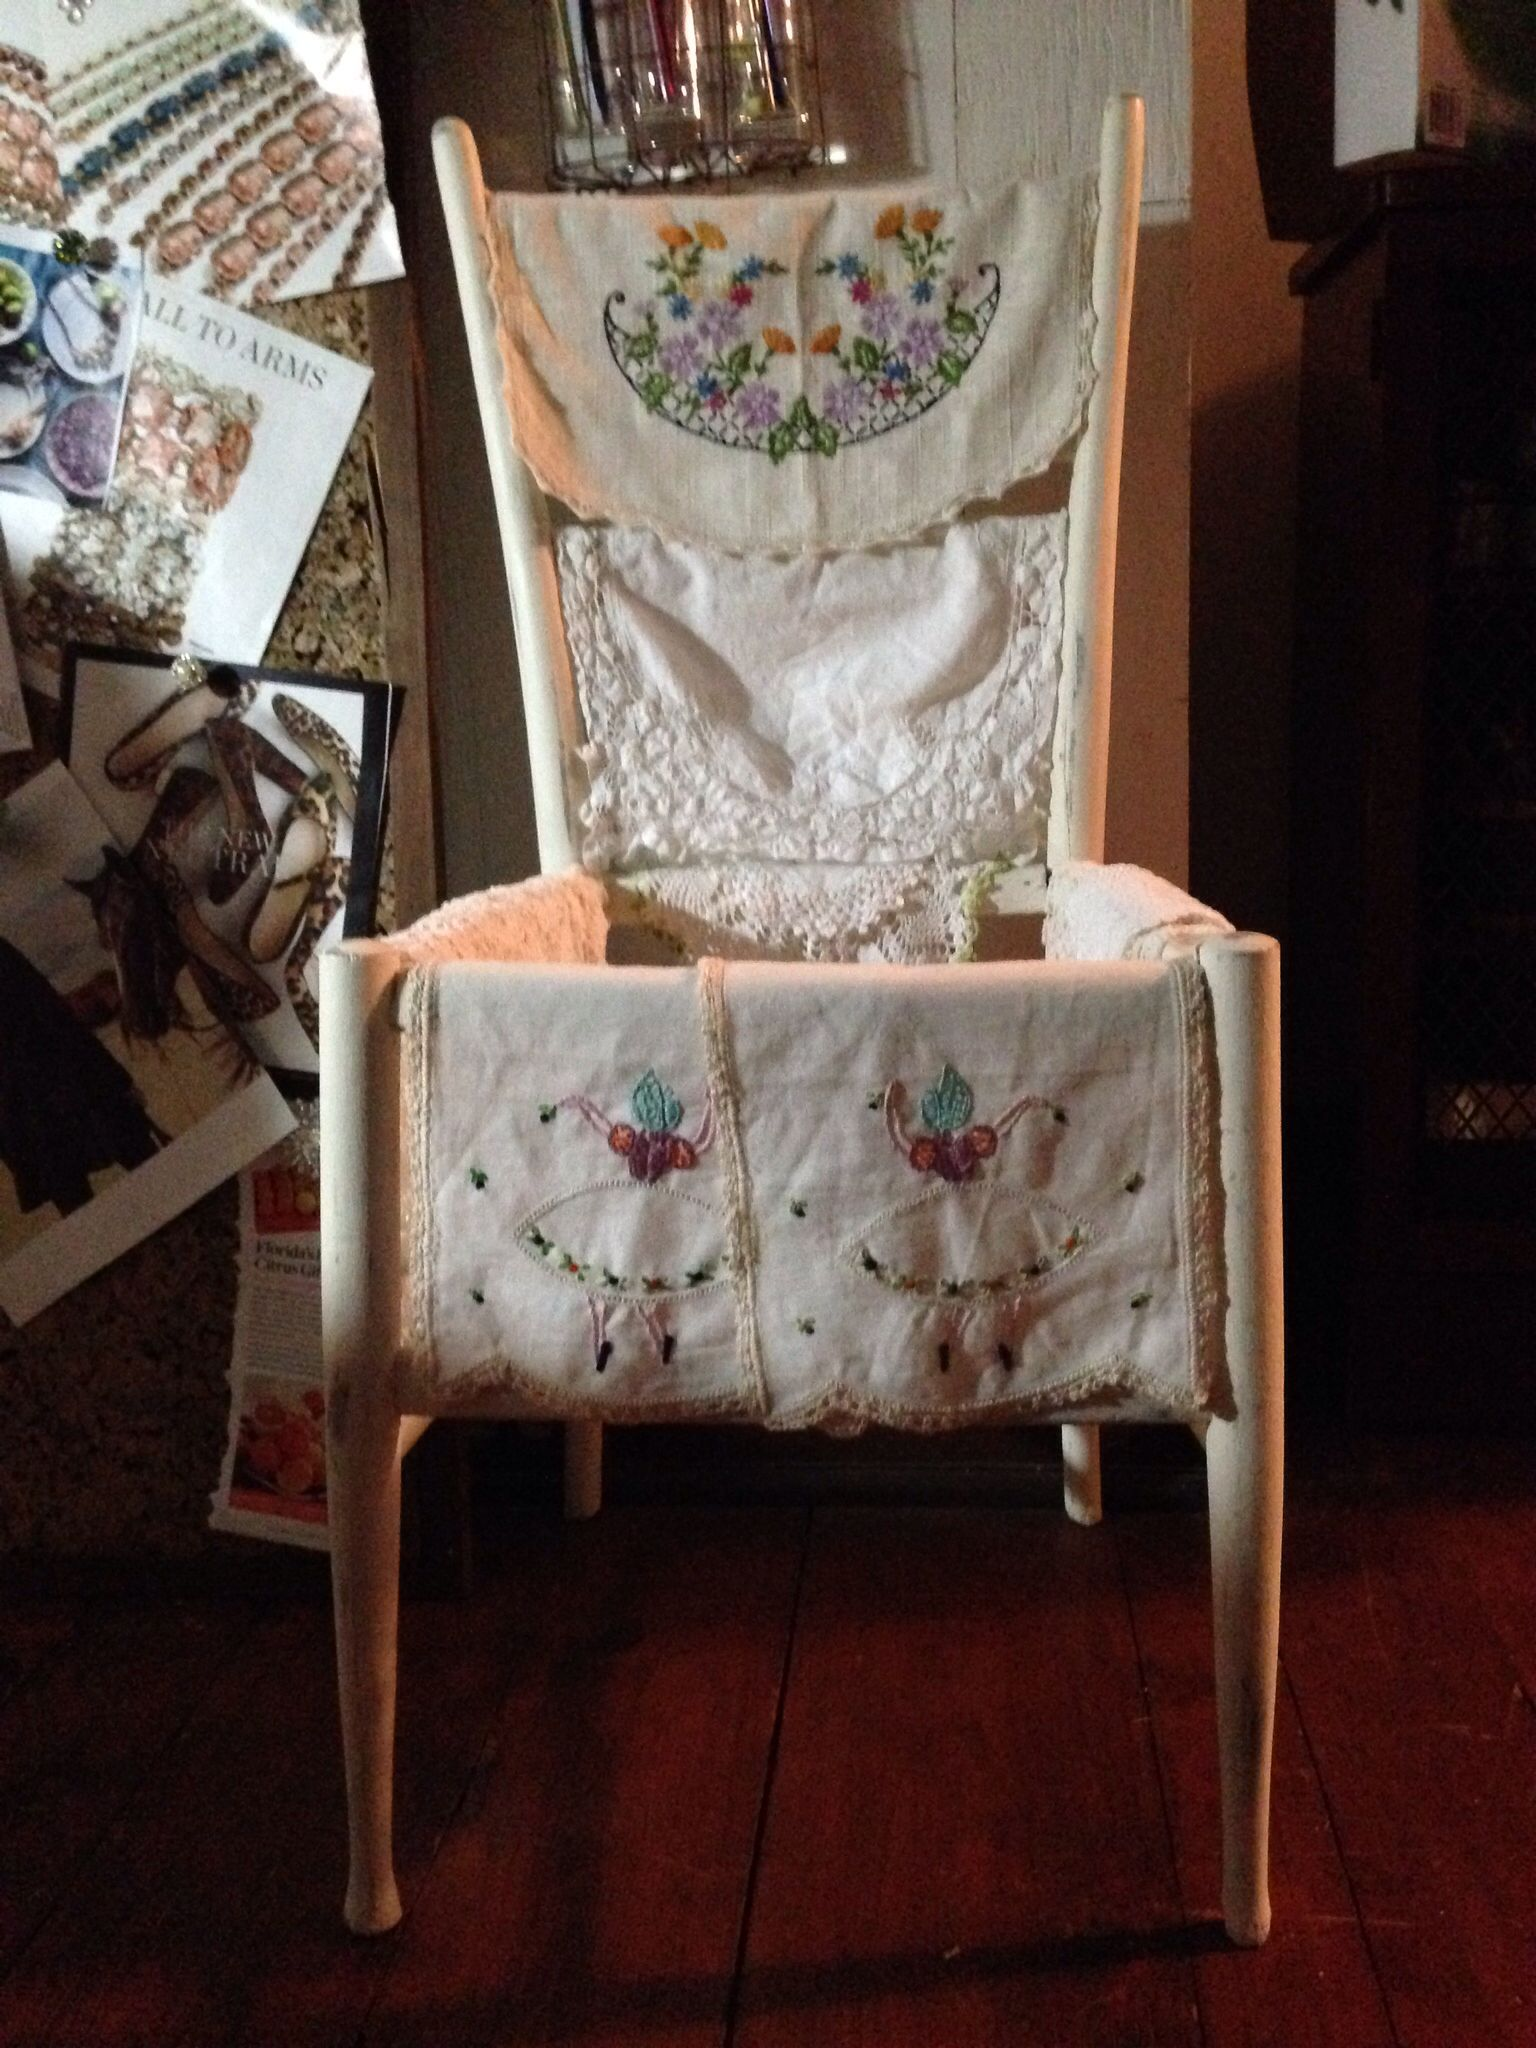 My friend's childhood chair makes a great display for my vintage linen